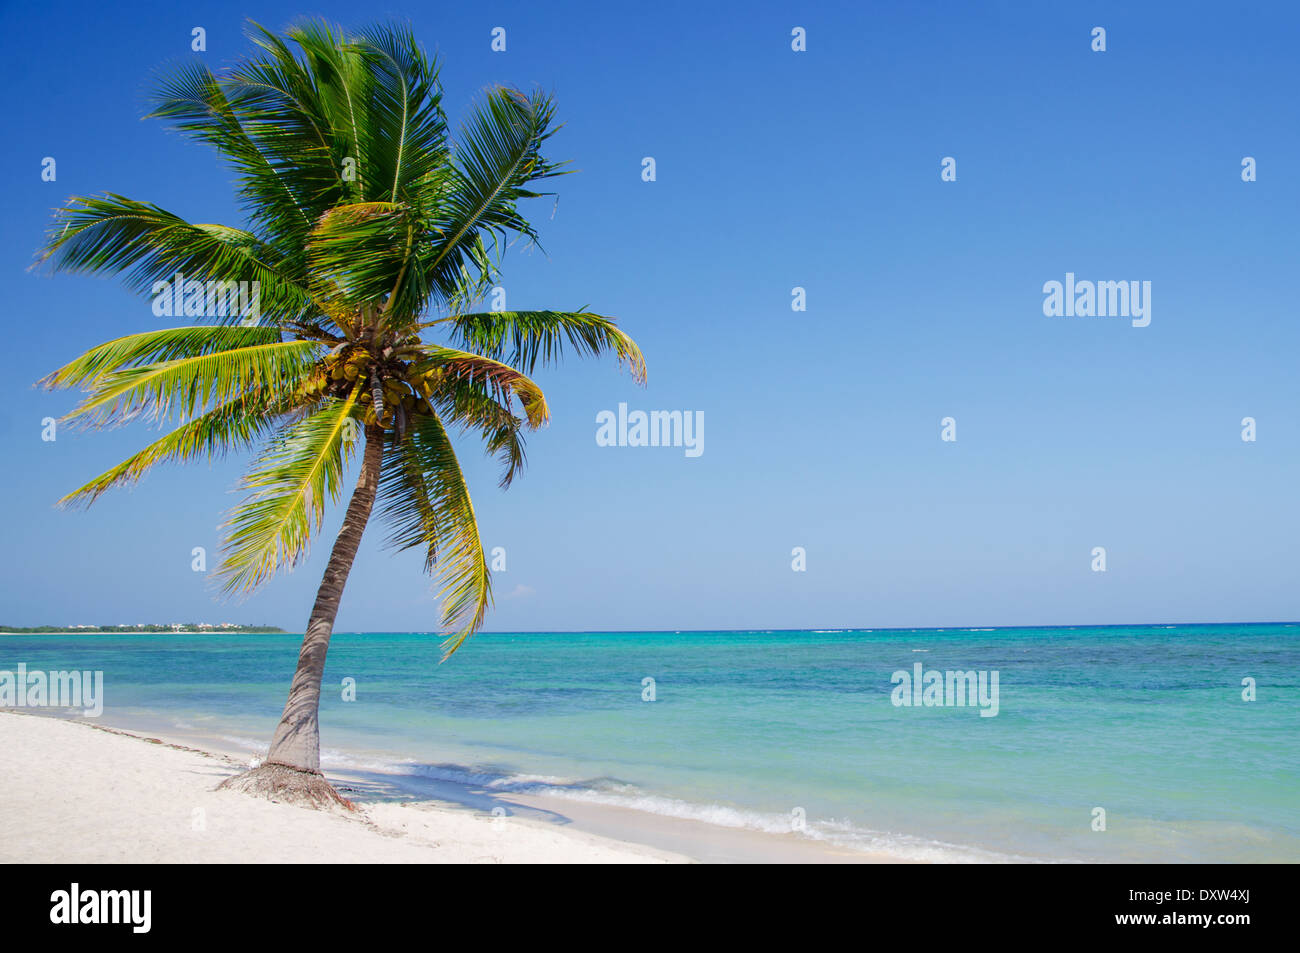 leaning palm tree stock photos leaning palm tree stock images alamy